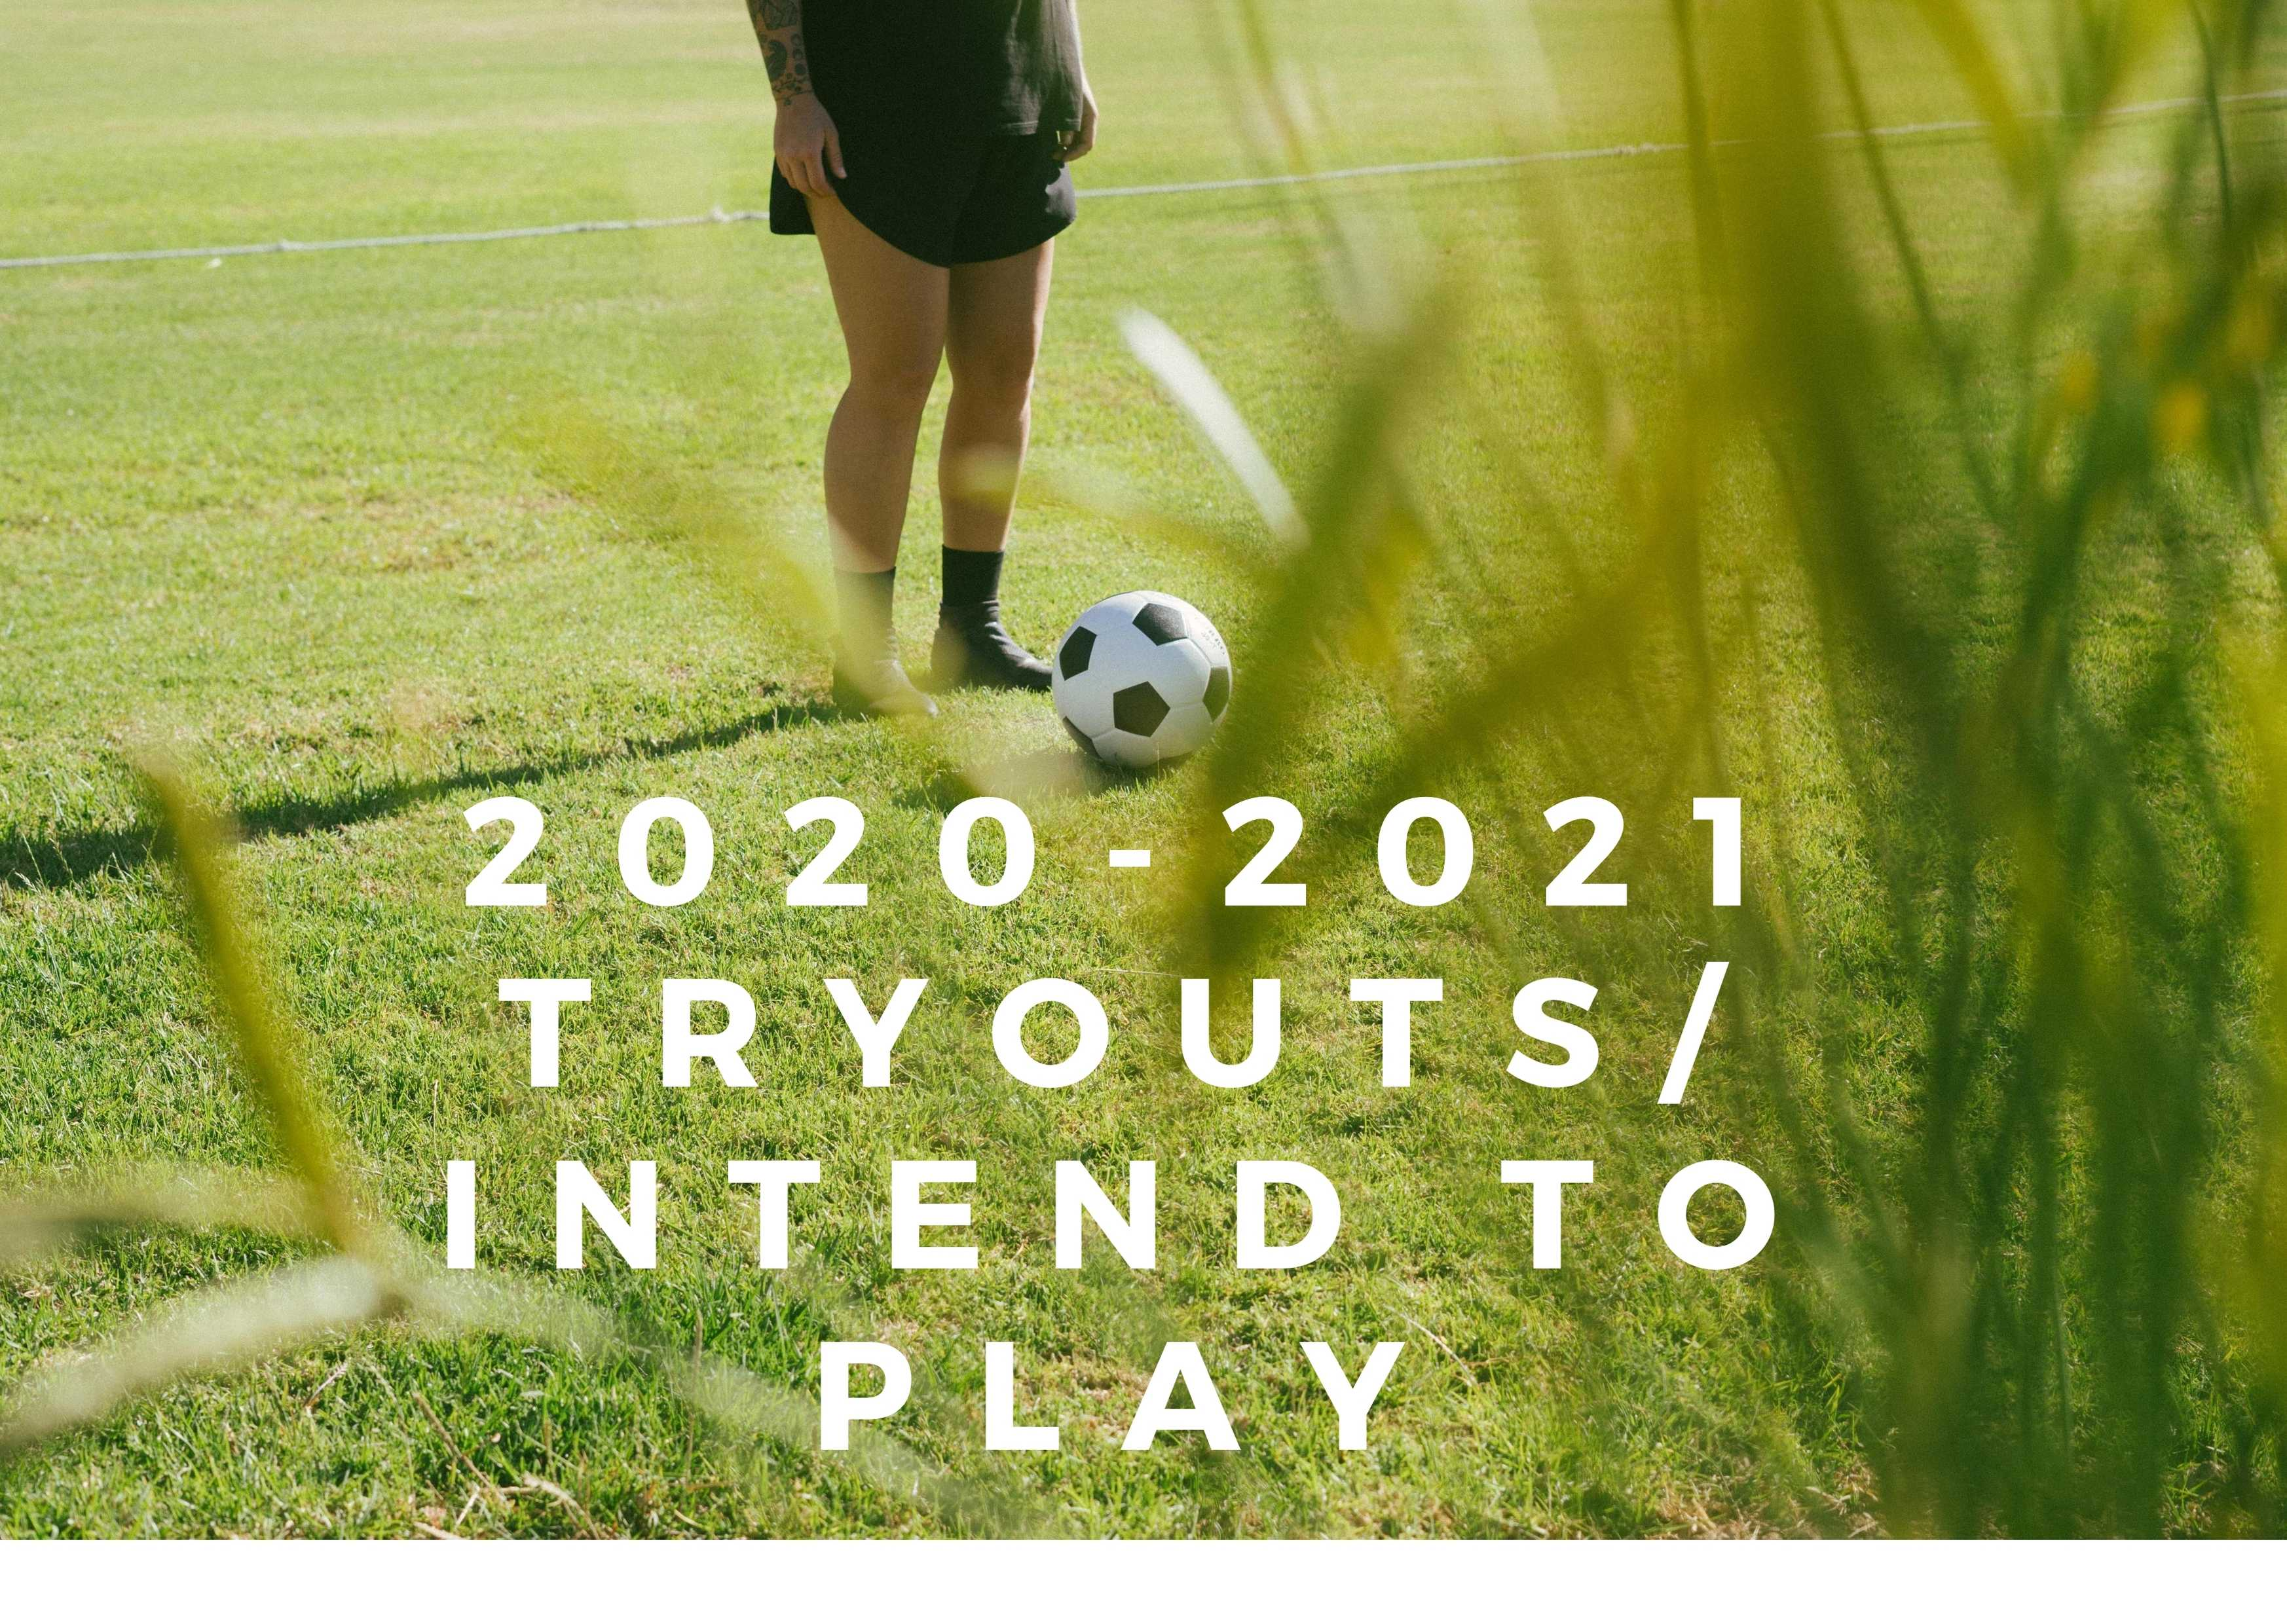 Tryouts/Intend to Play